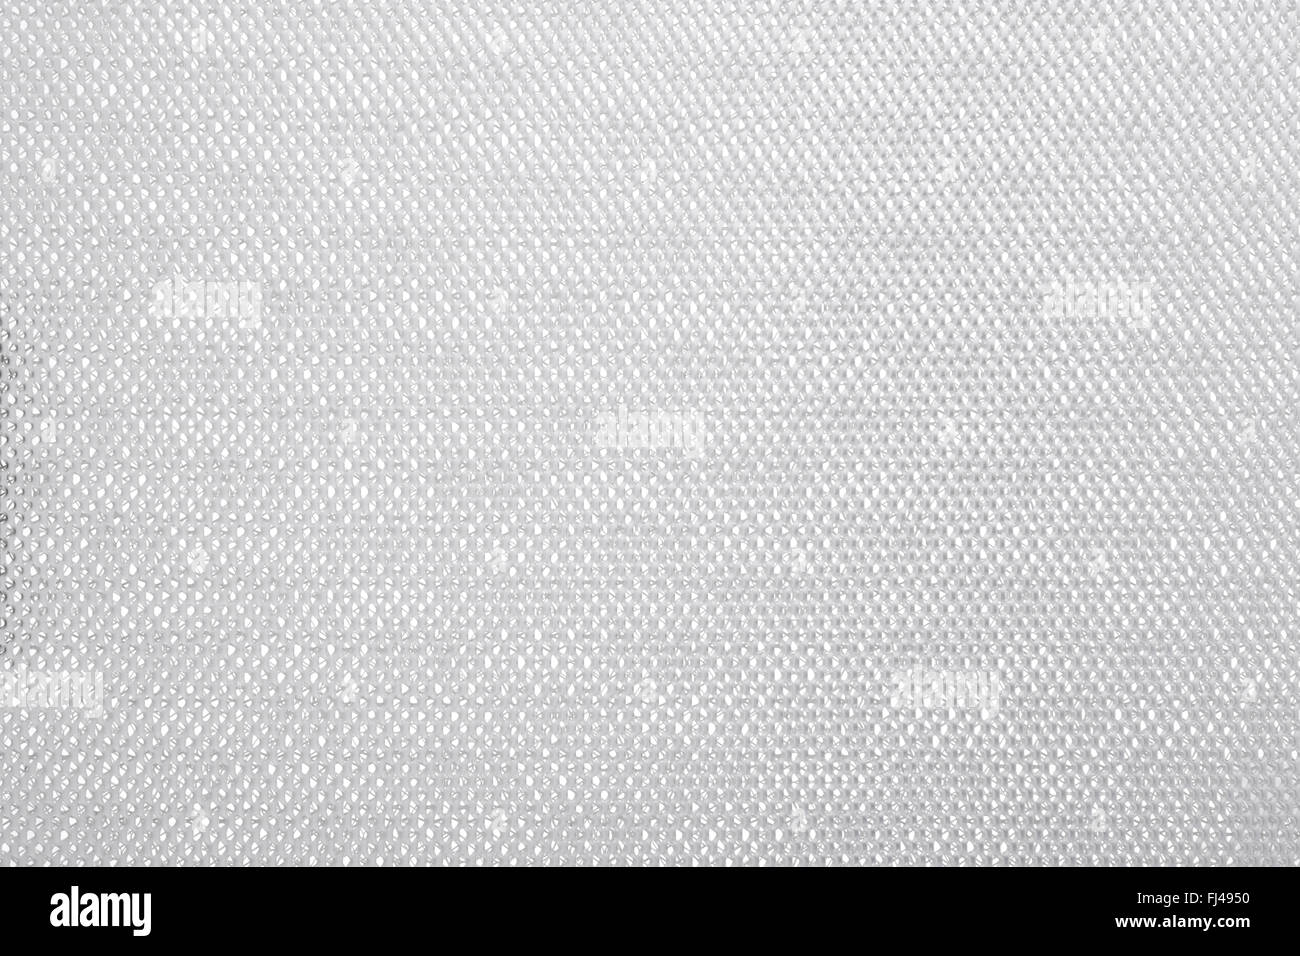 Fine wire mesh on white background Stock Photo: 97210652 - Alamy